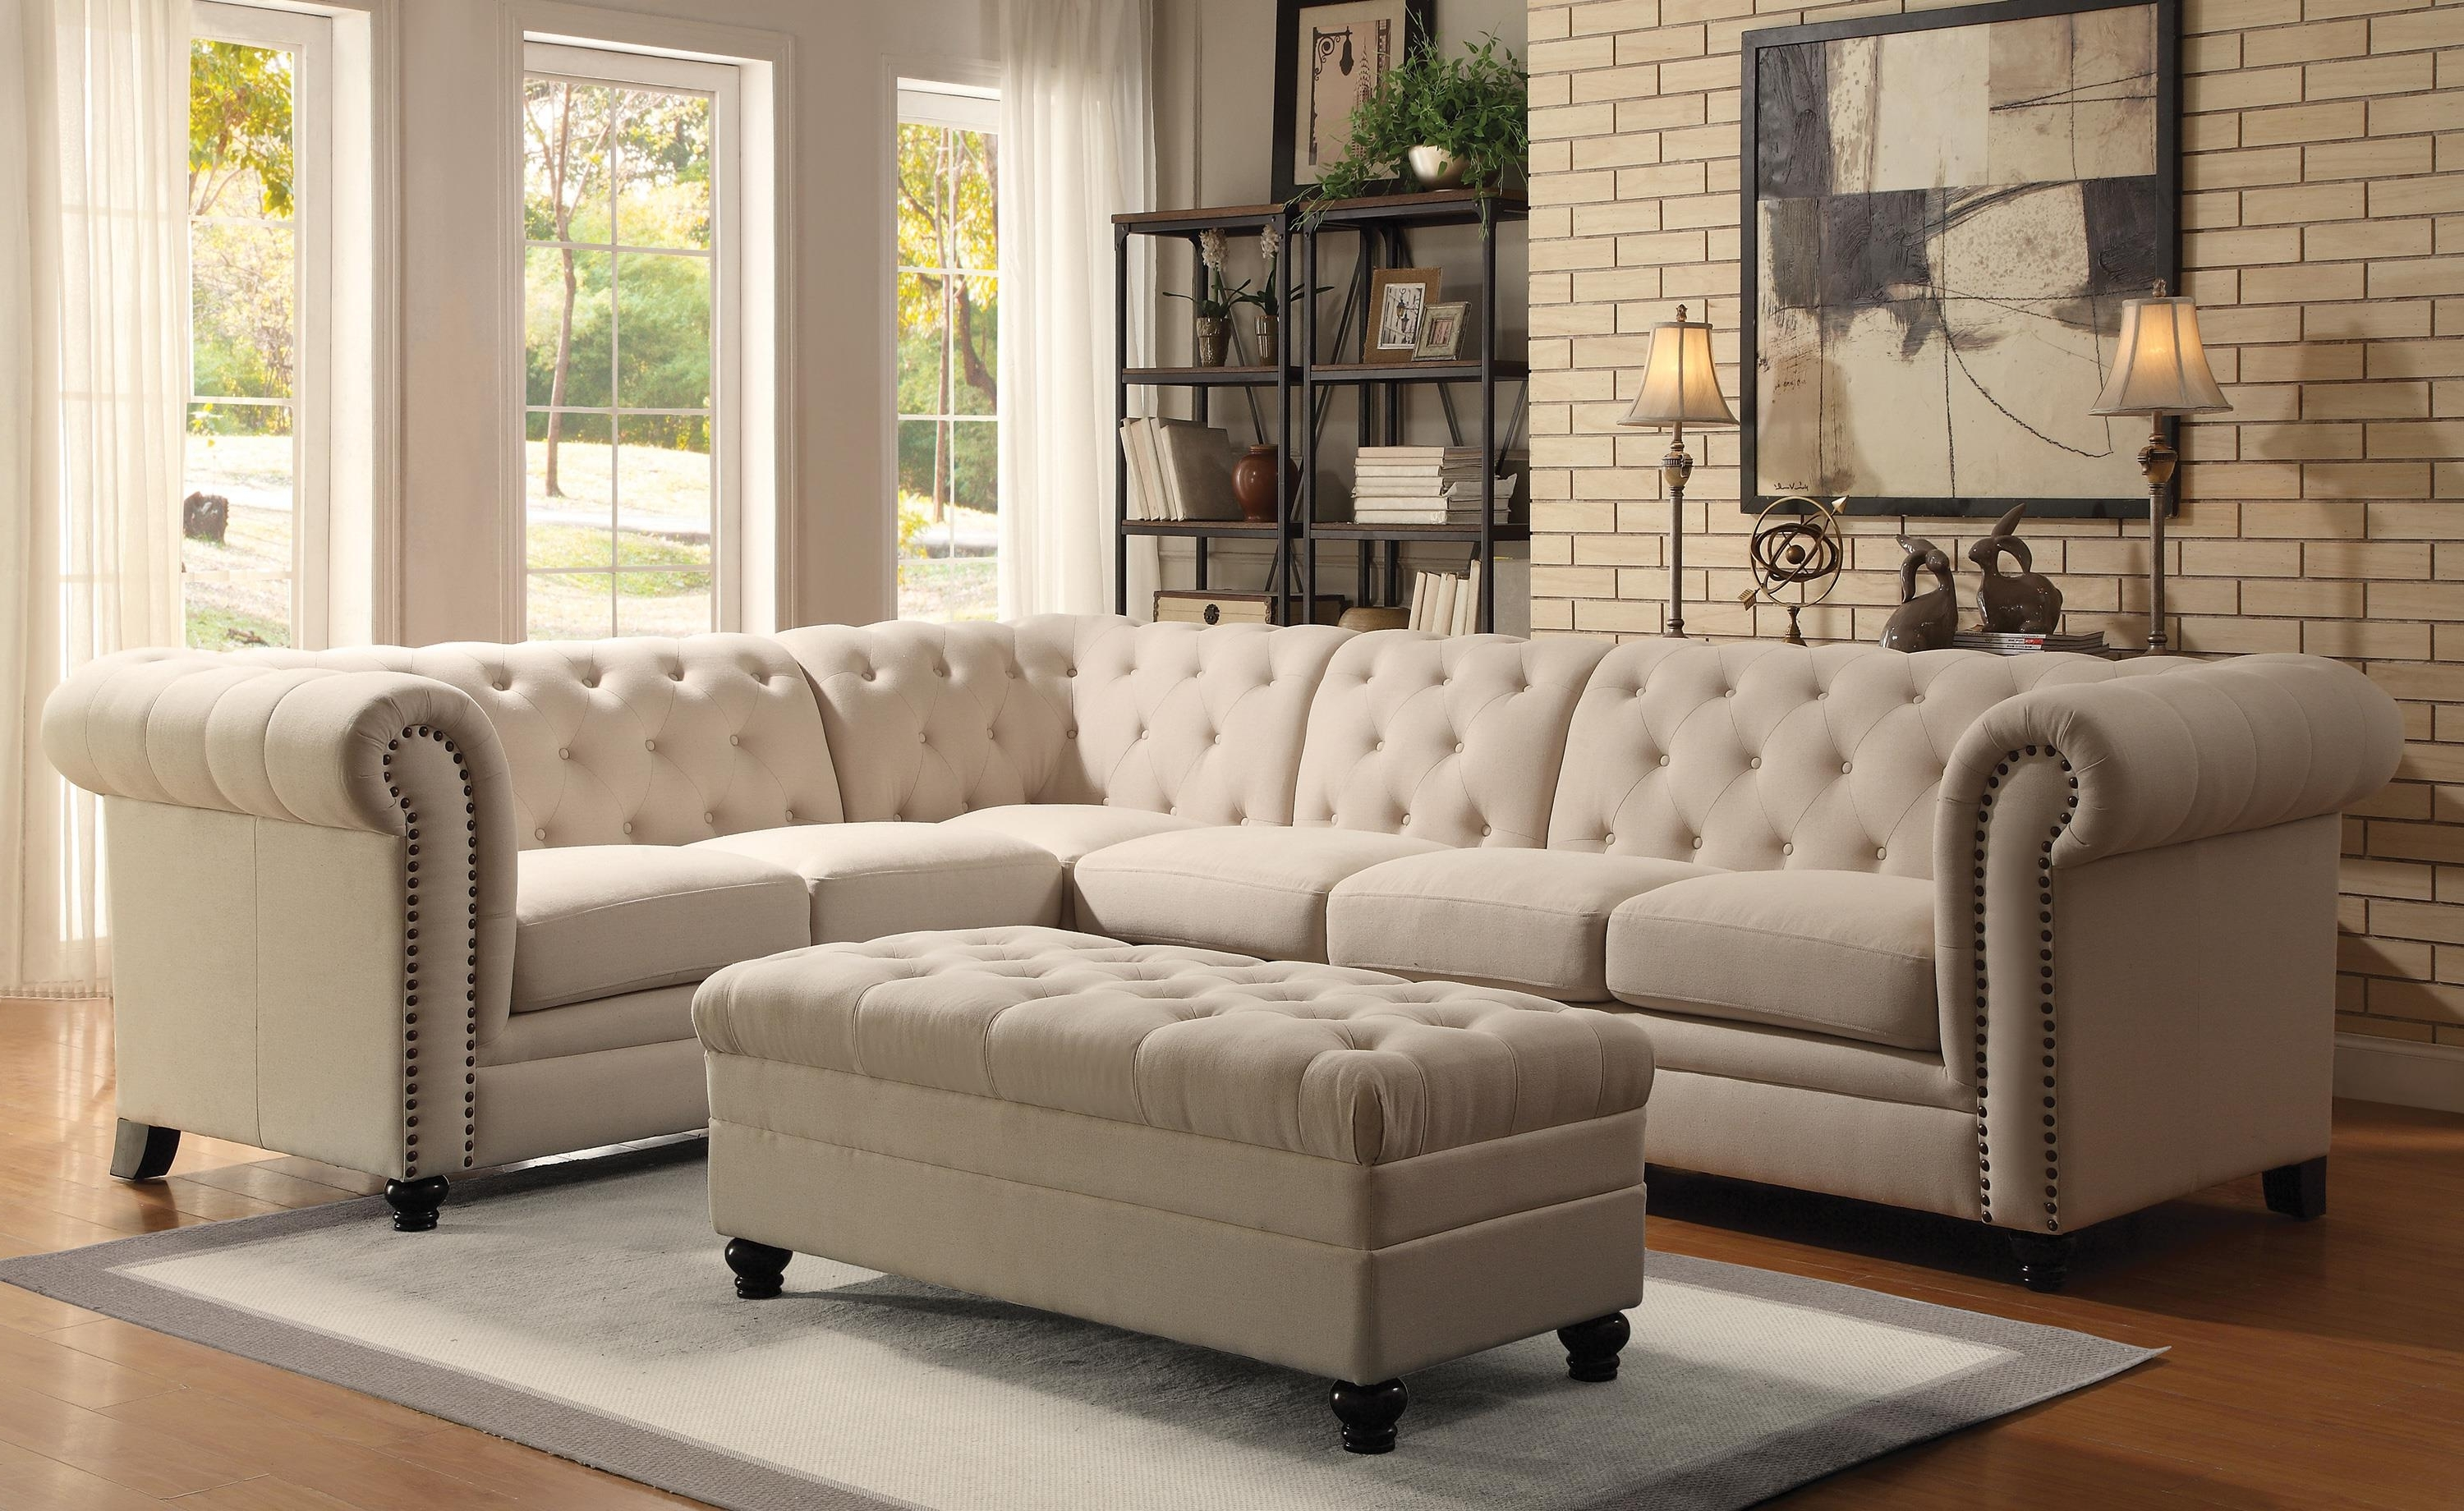 appealing extraordinary spaces sectionals image of small sofa beautiful size inspirations affordable sectional full sofas cheap u oversized reclining for under in couches red shaped